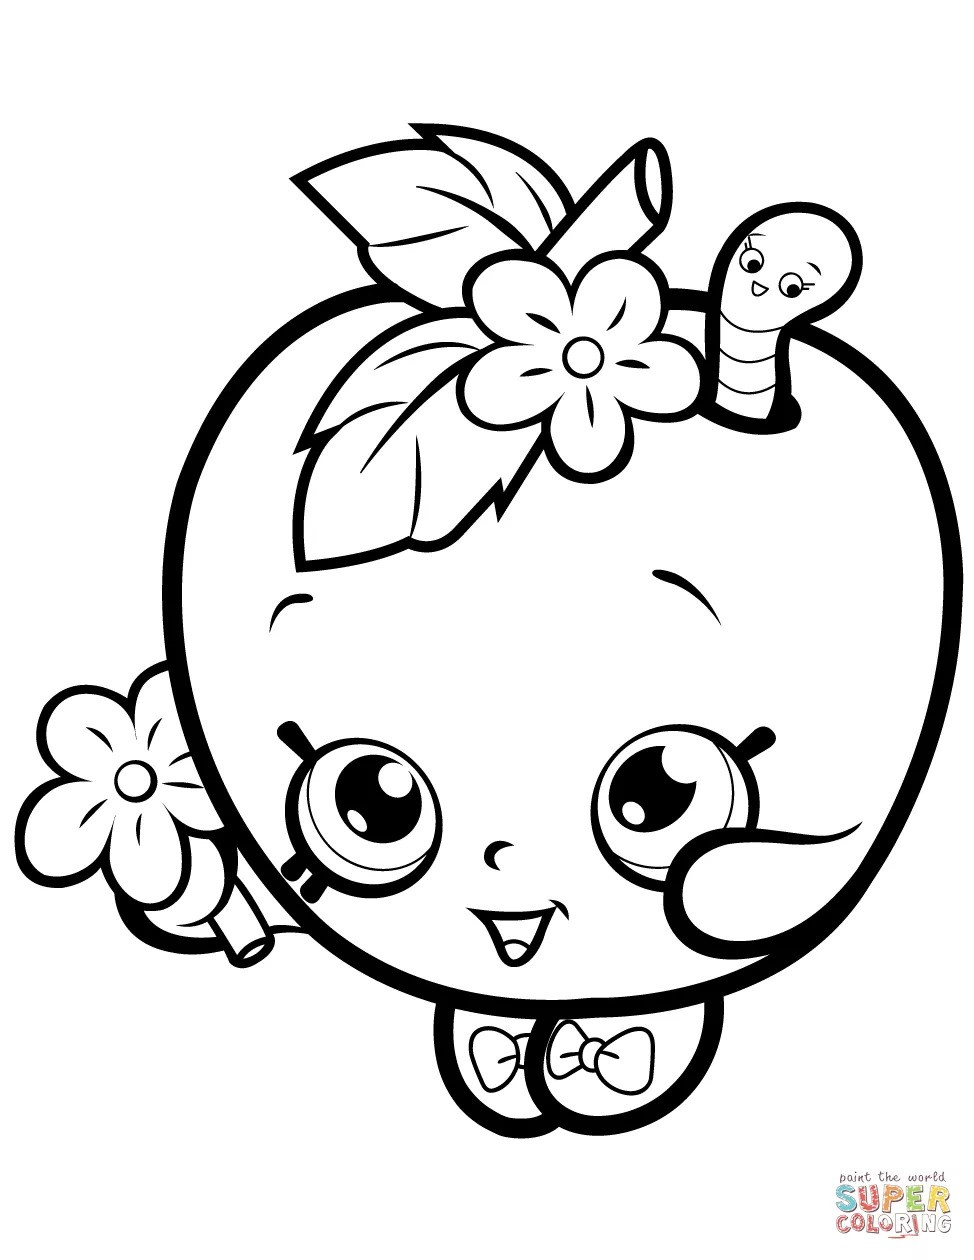 Shopkins Coloring Pages Printable Free At Getdrawingscom Free For